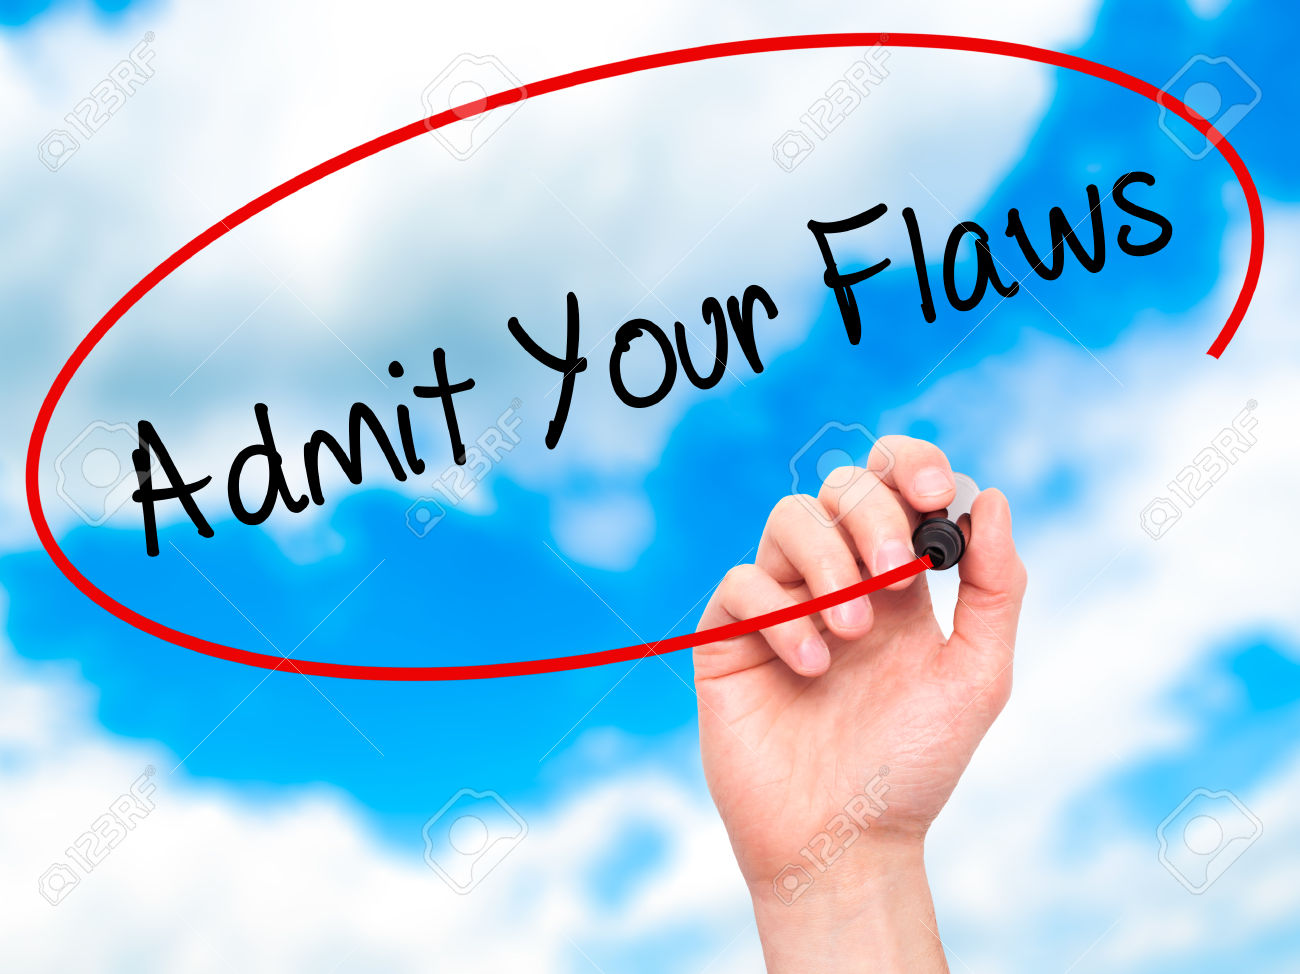 Admit your flaws